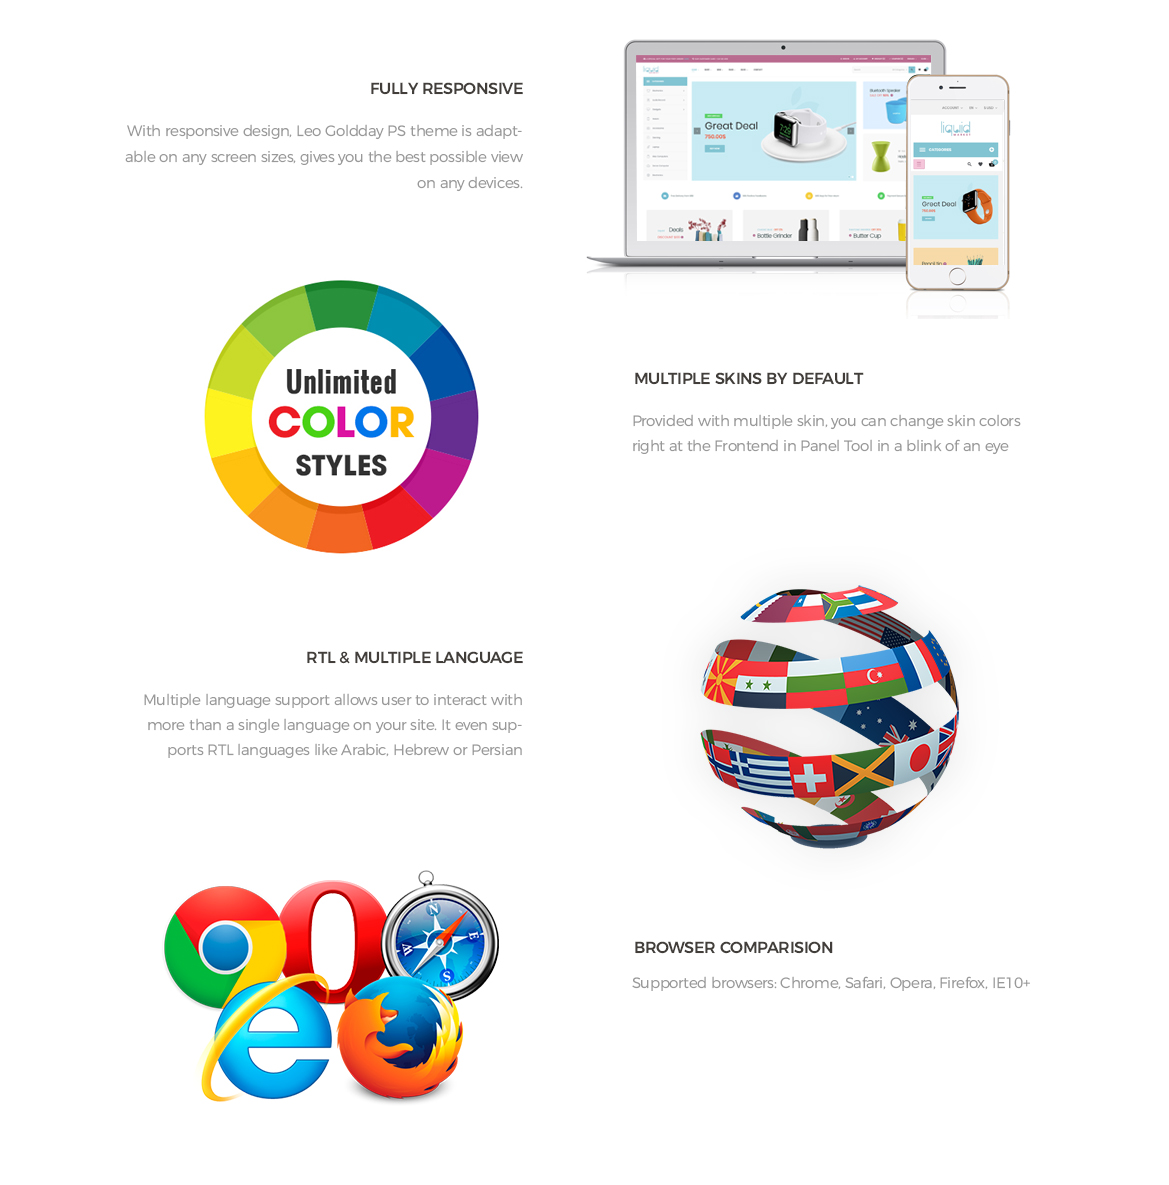 prestashop 1.7 theme features - Digital template